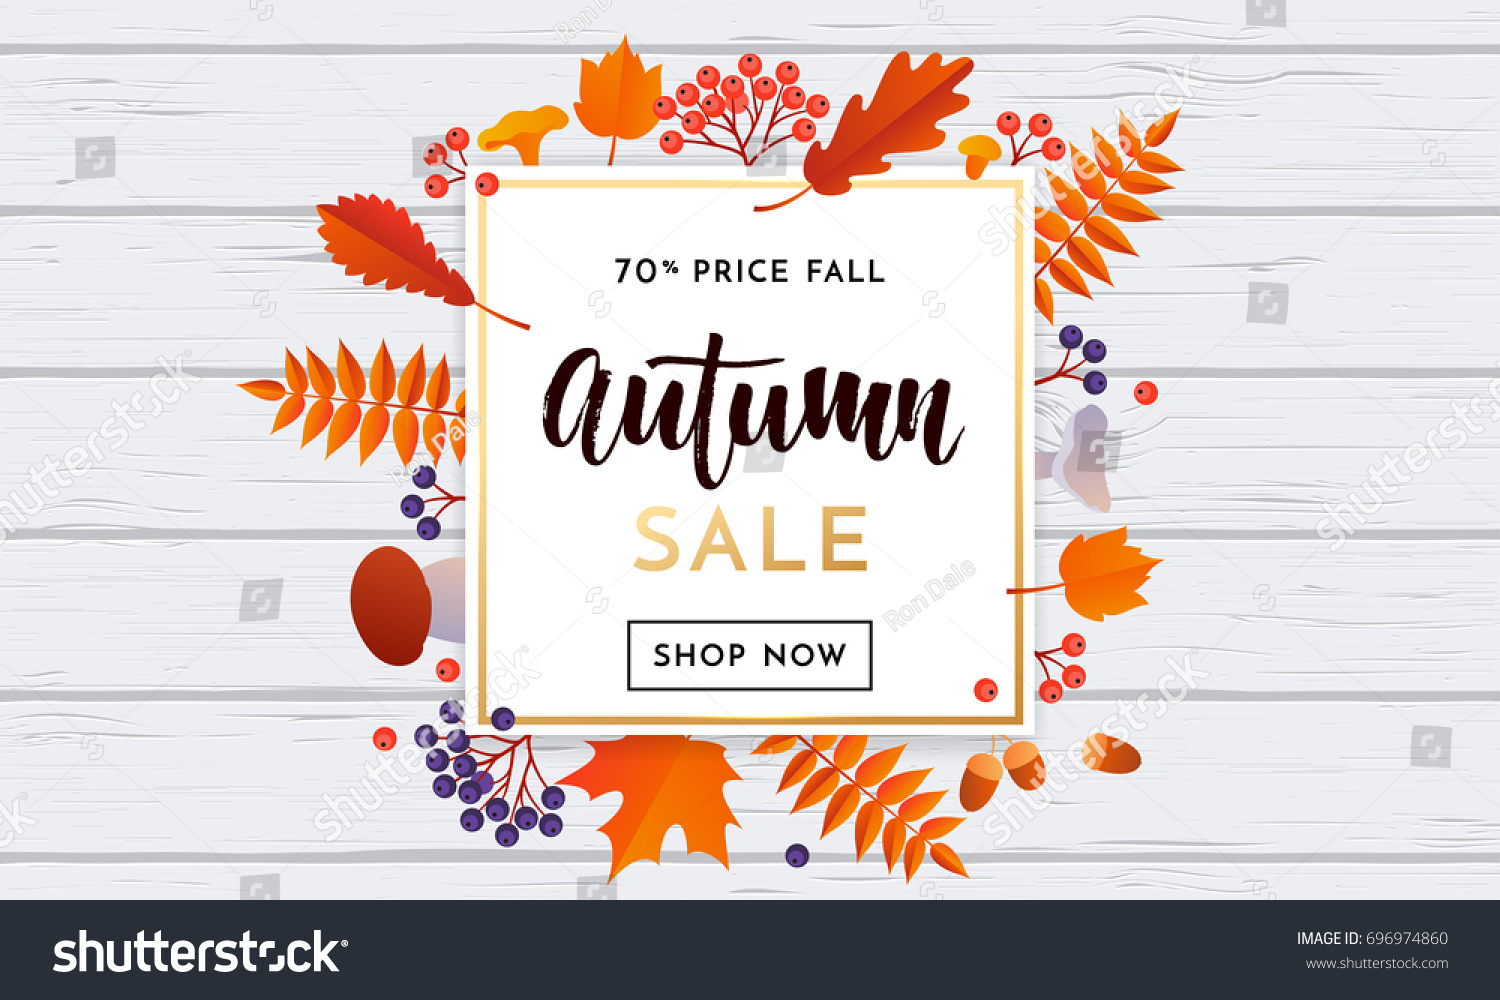 Shop with Acorn Sales Coupon Code, Save with Anycodes. You don't need to bargain with the salesman. AnyCodes has presented every offer of Acorn Sales just in front of you. You can find 79 Acorn Sales Coupon Codes and deals on the page. Please note those .